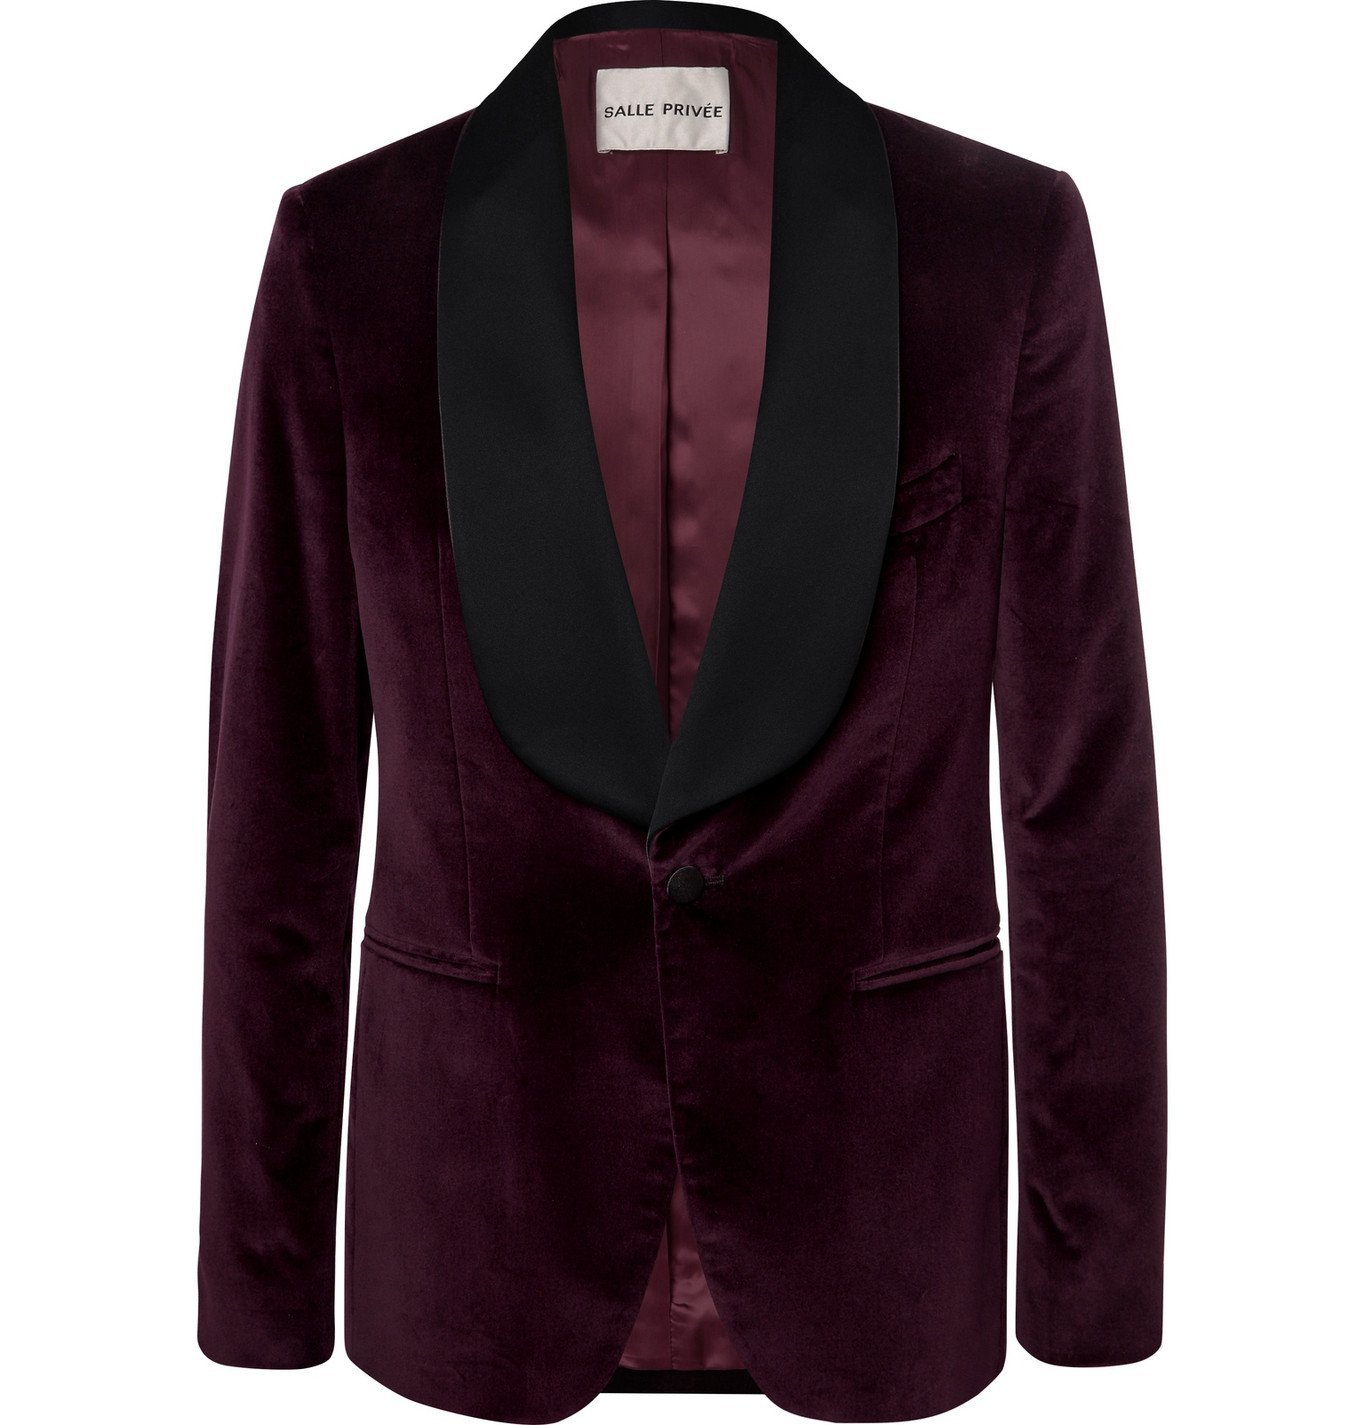 Photo: SALLE PRIVÉE - Burgundy Bori Slim-Fit Satin-Trimmed Cotton-Velvet Tuxedo Jacket - Burgundy